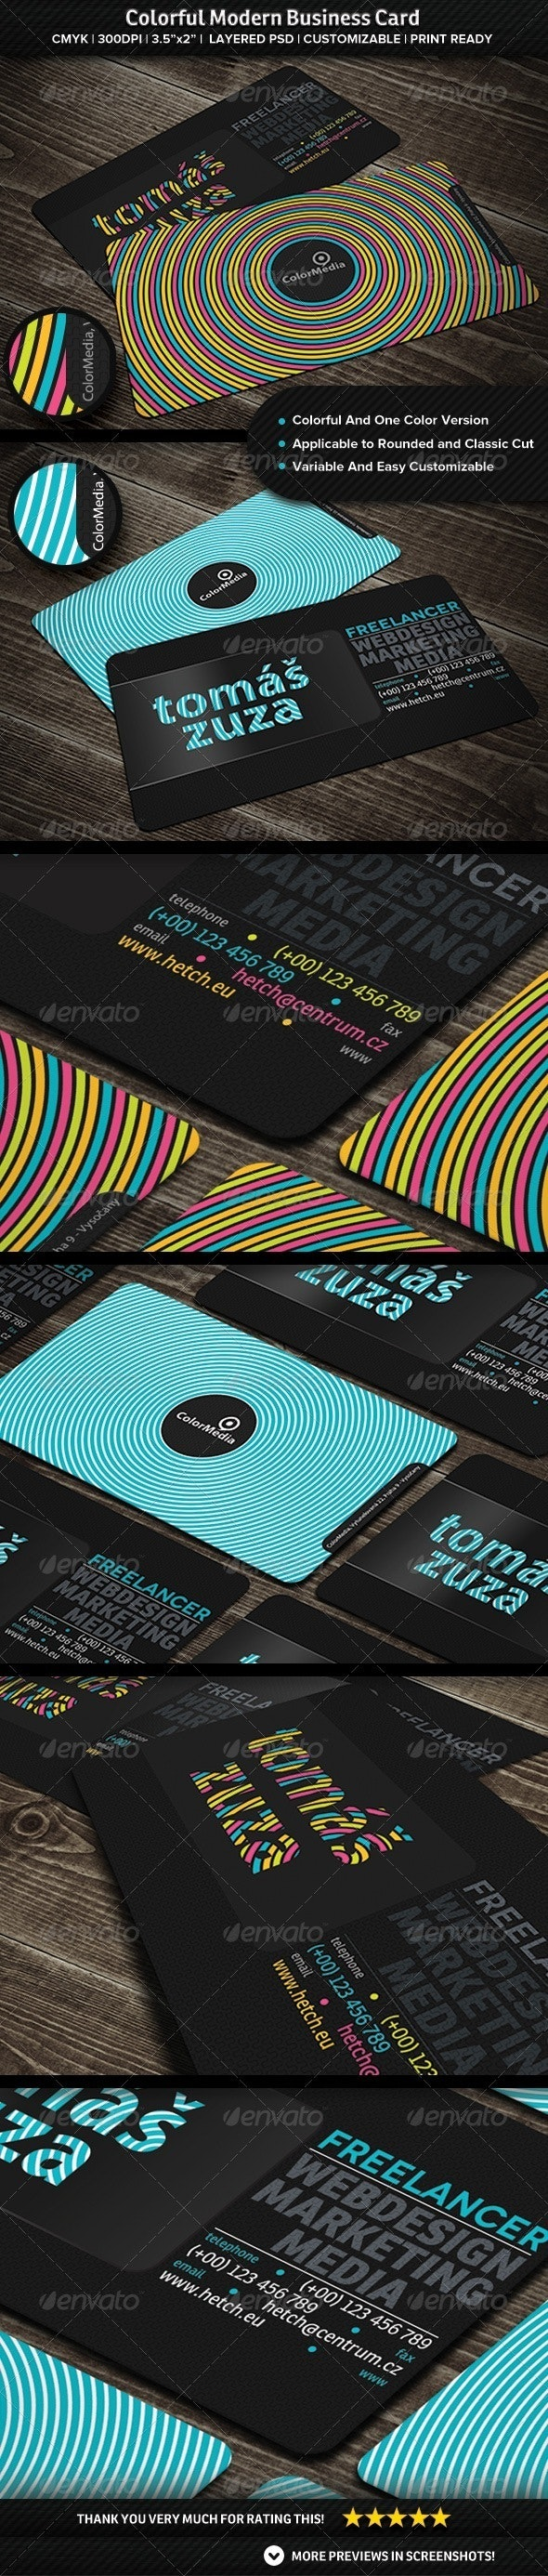 Colorful Modern Business Card - Creative Business Cards